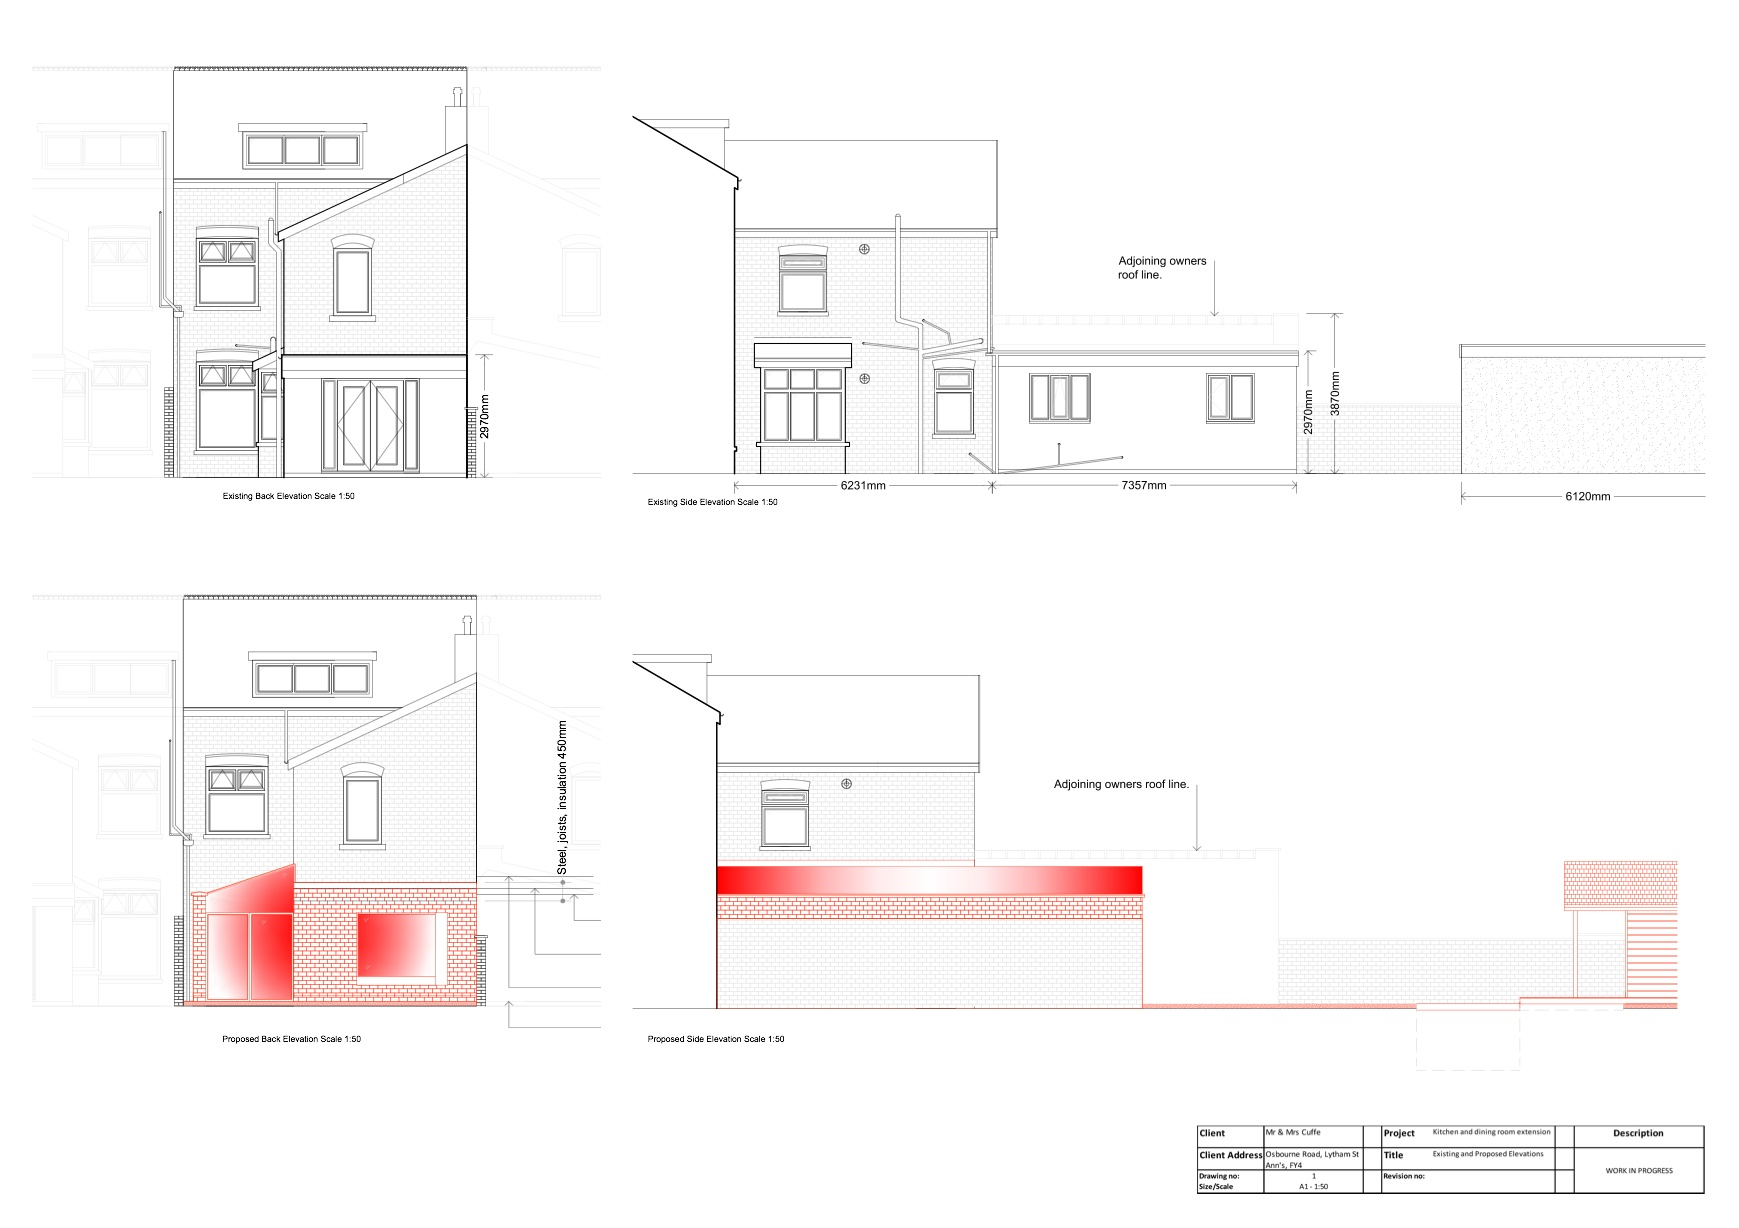 Existing & Proposed Elevations - 02 1,50.jpg